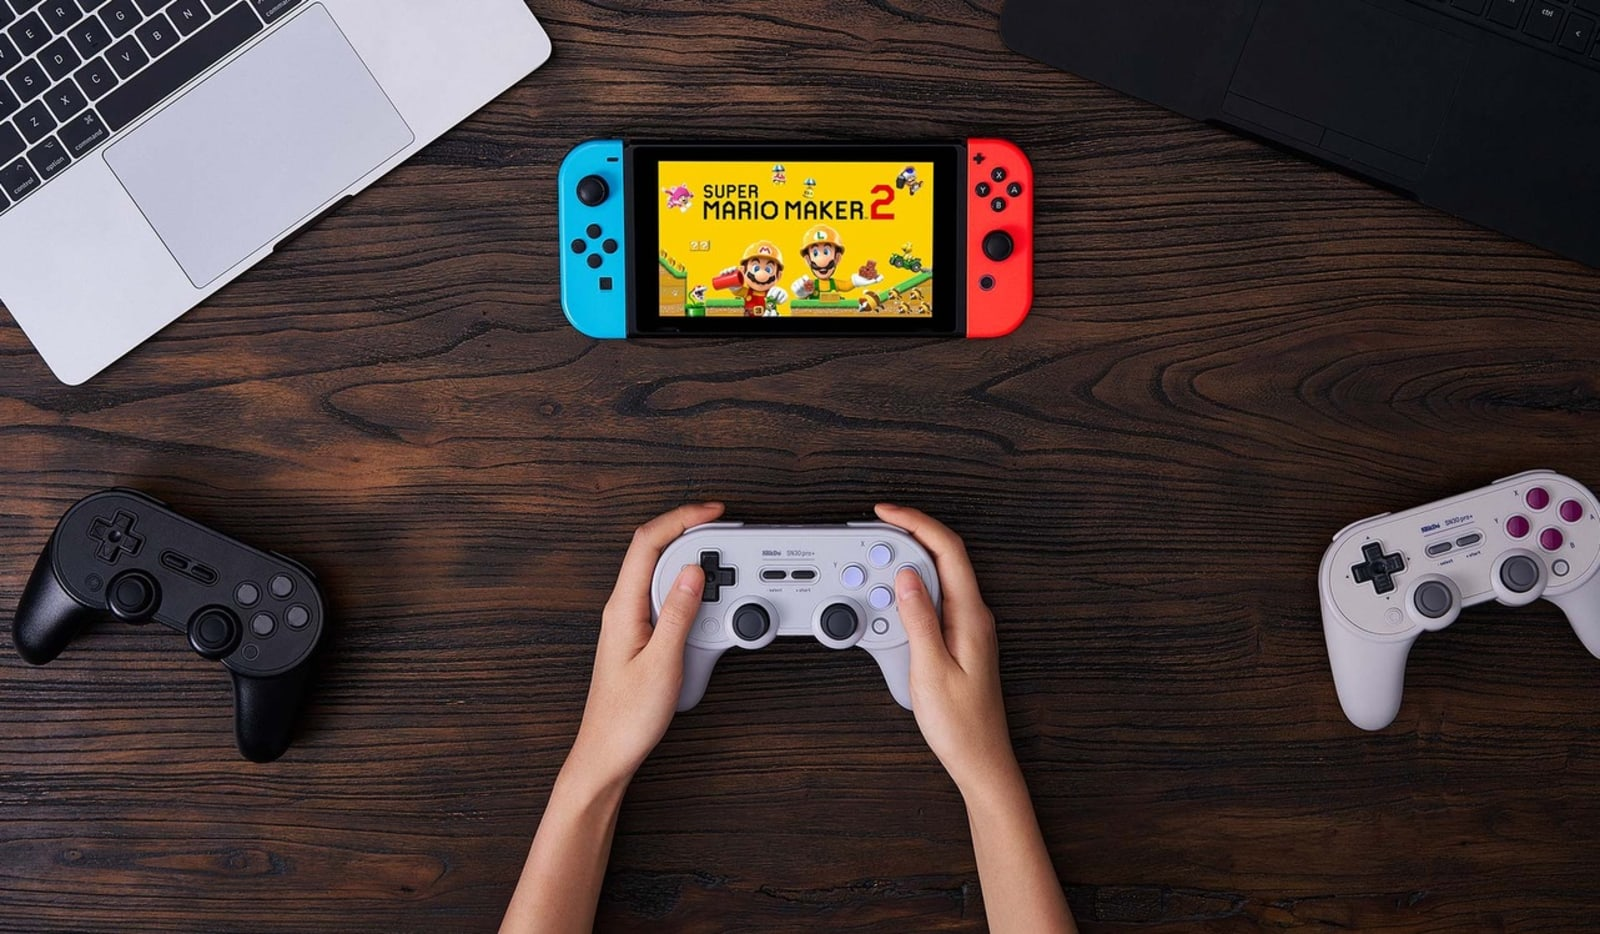 8BitDo's latest controller has fully customizable buttons